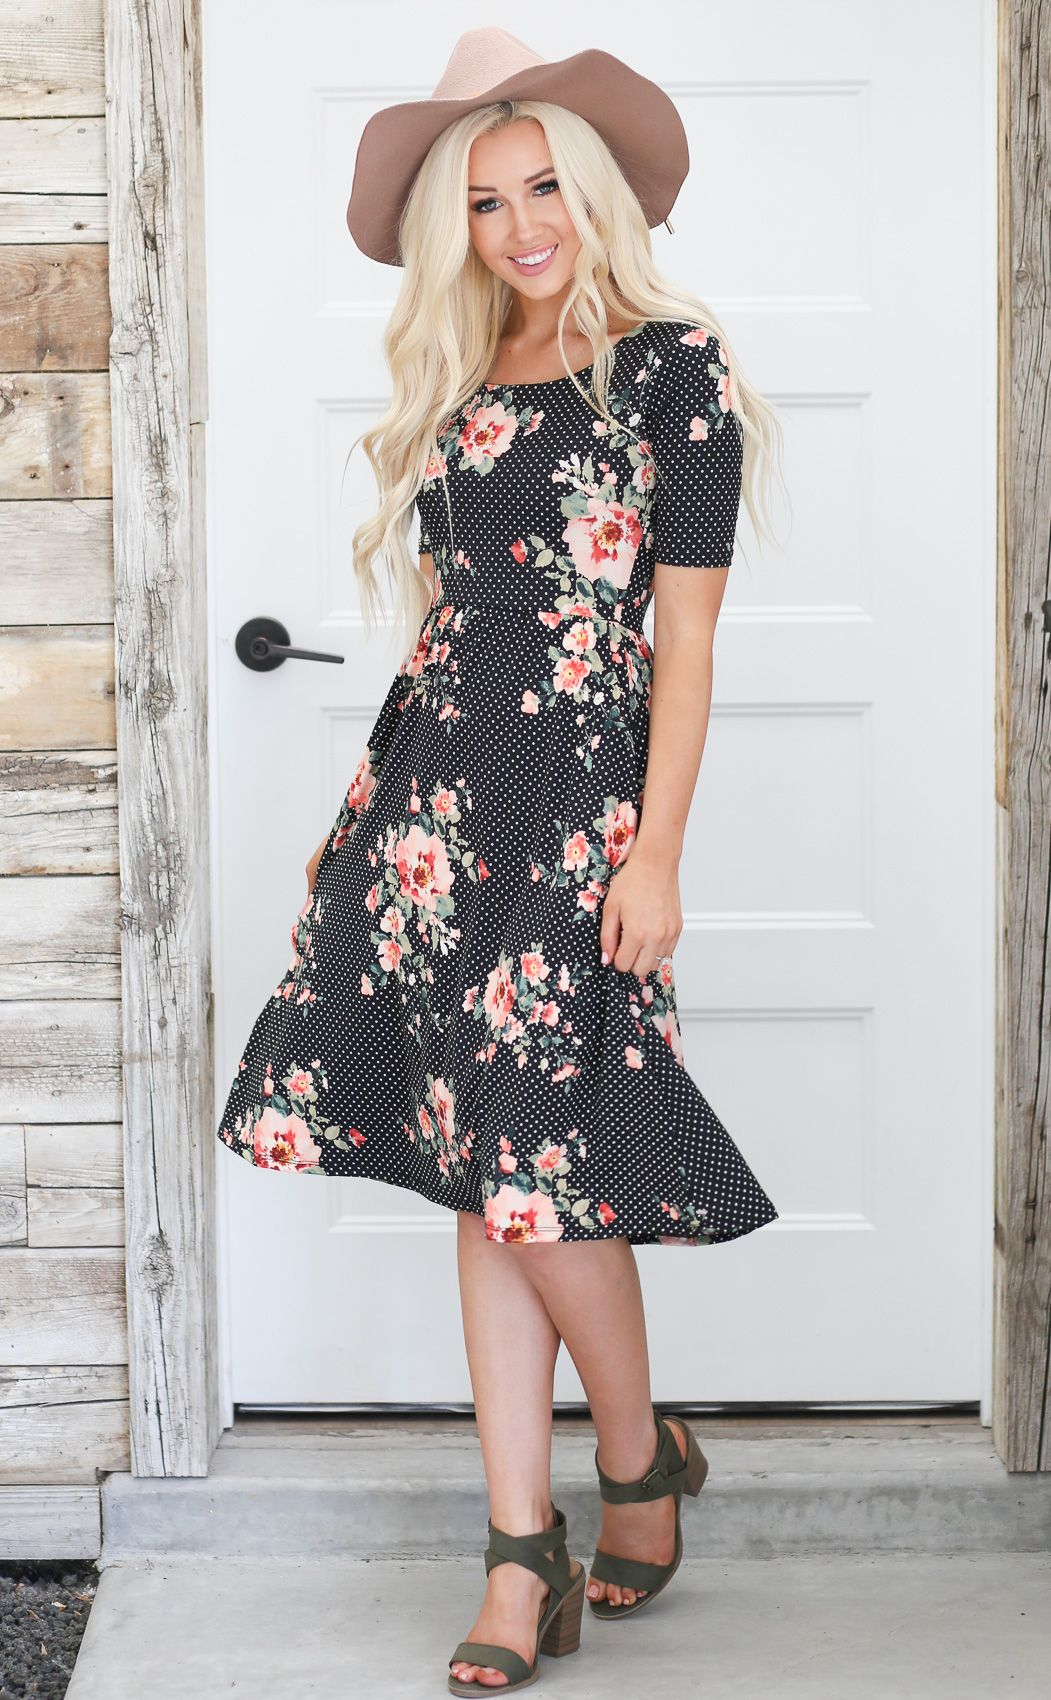 bd4d77217cb2 Natalie Modest Dress in Black w/White Polka Dots & Coral Floral Print